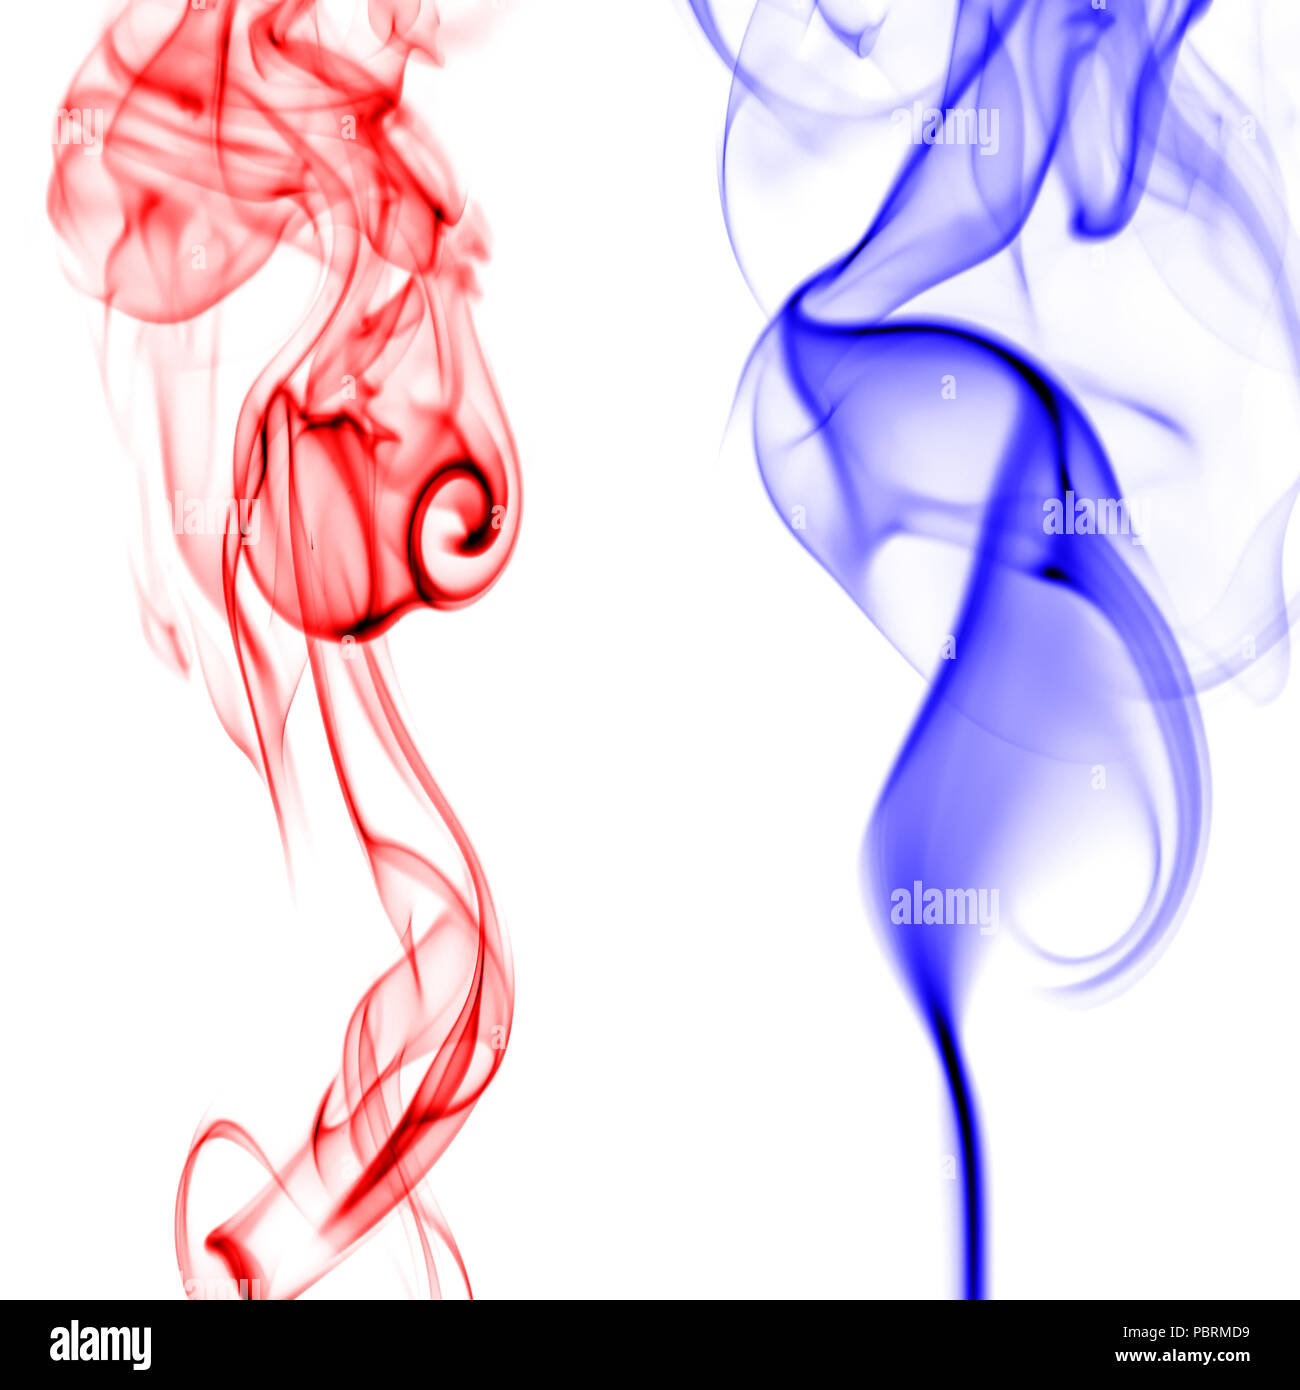 red and blue smoke patterns on white background stock photo alamy alamy